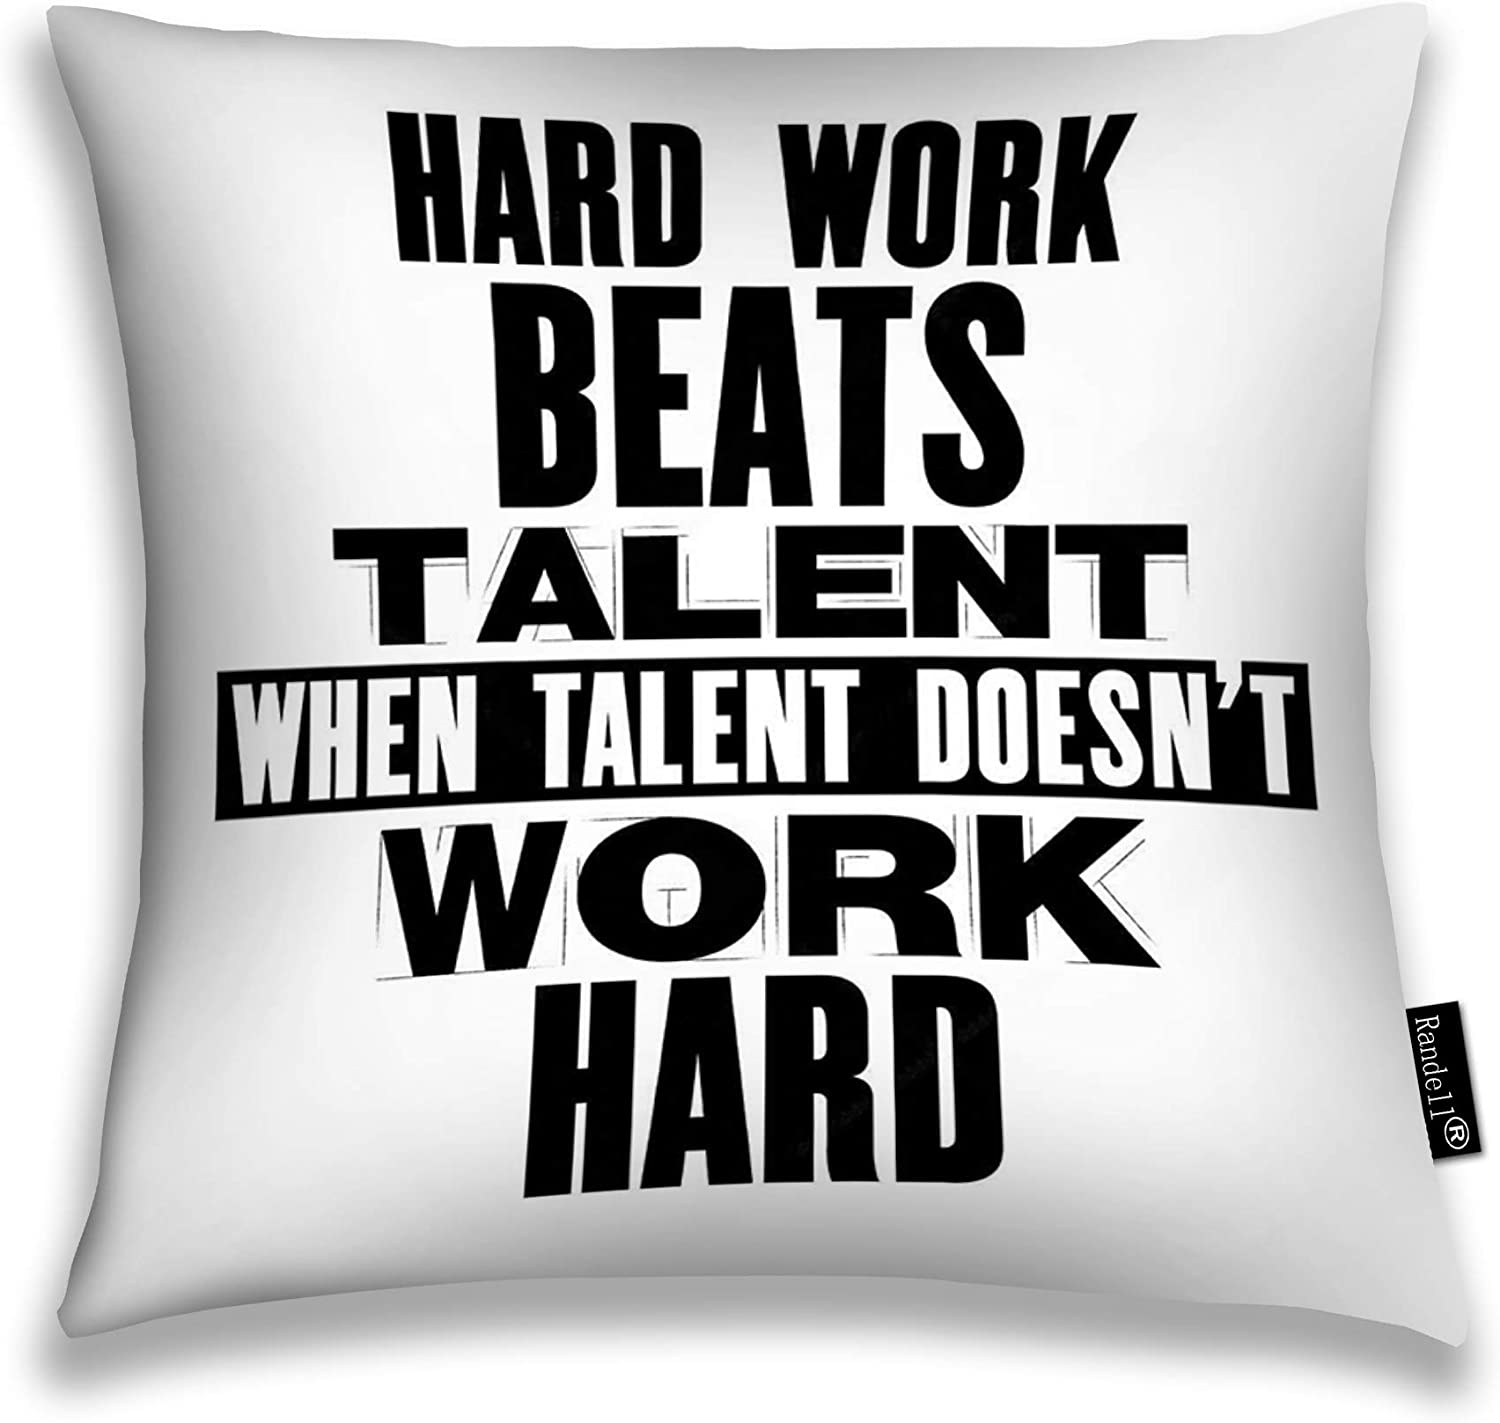 Amazon Com Randell Decorative Throw Pillow Case Hard Work Beats Talent When Does Not Cushion Cover Square 18 X 18 Inches Home Kitchen